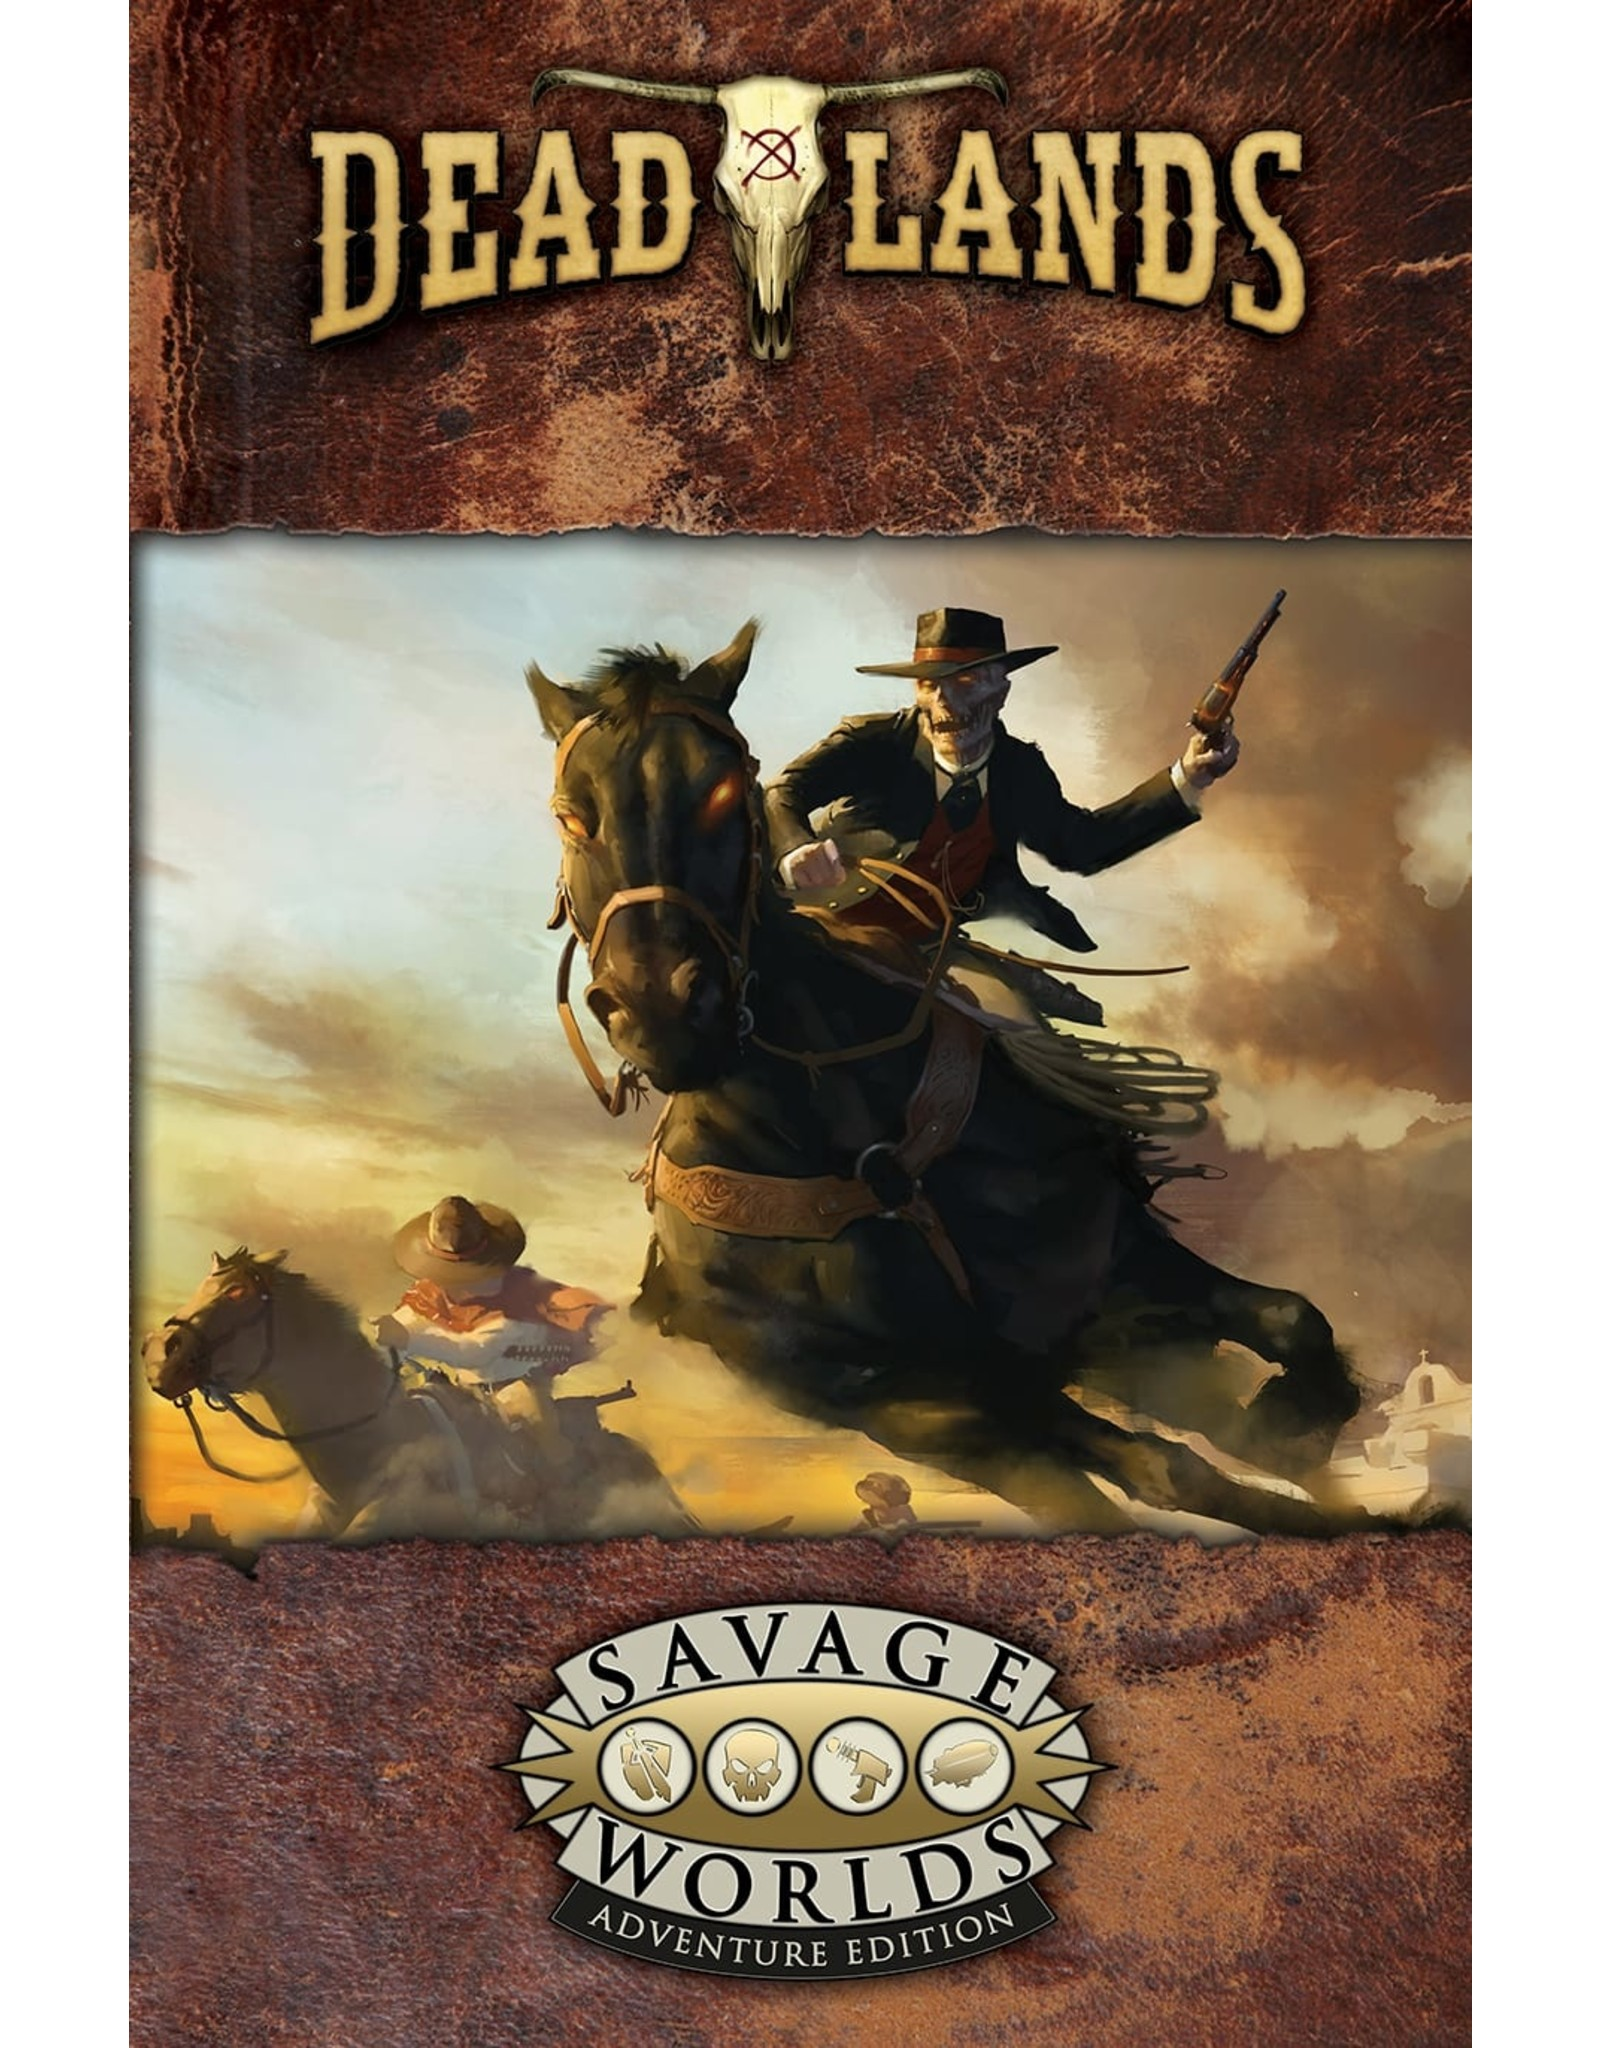 Pinnacle Entertainment Group Savage Worlds: Deadlands - The Weird West Core Rulebook